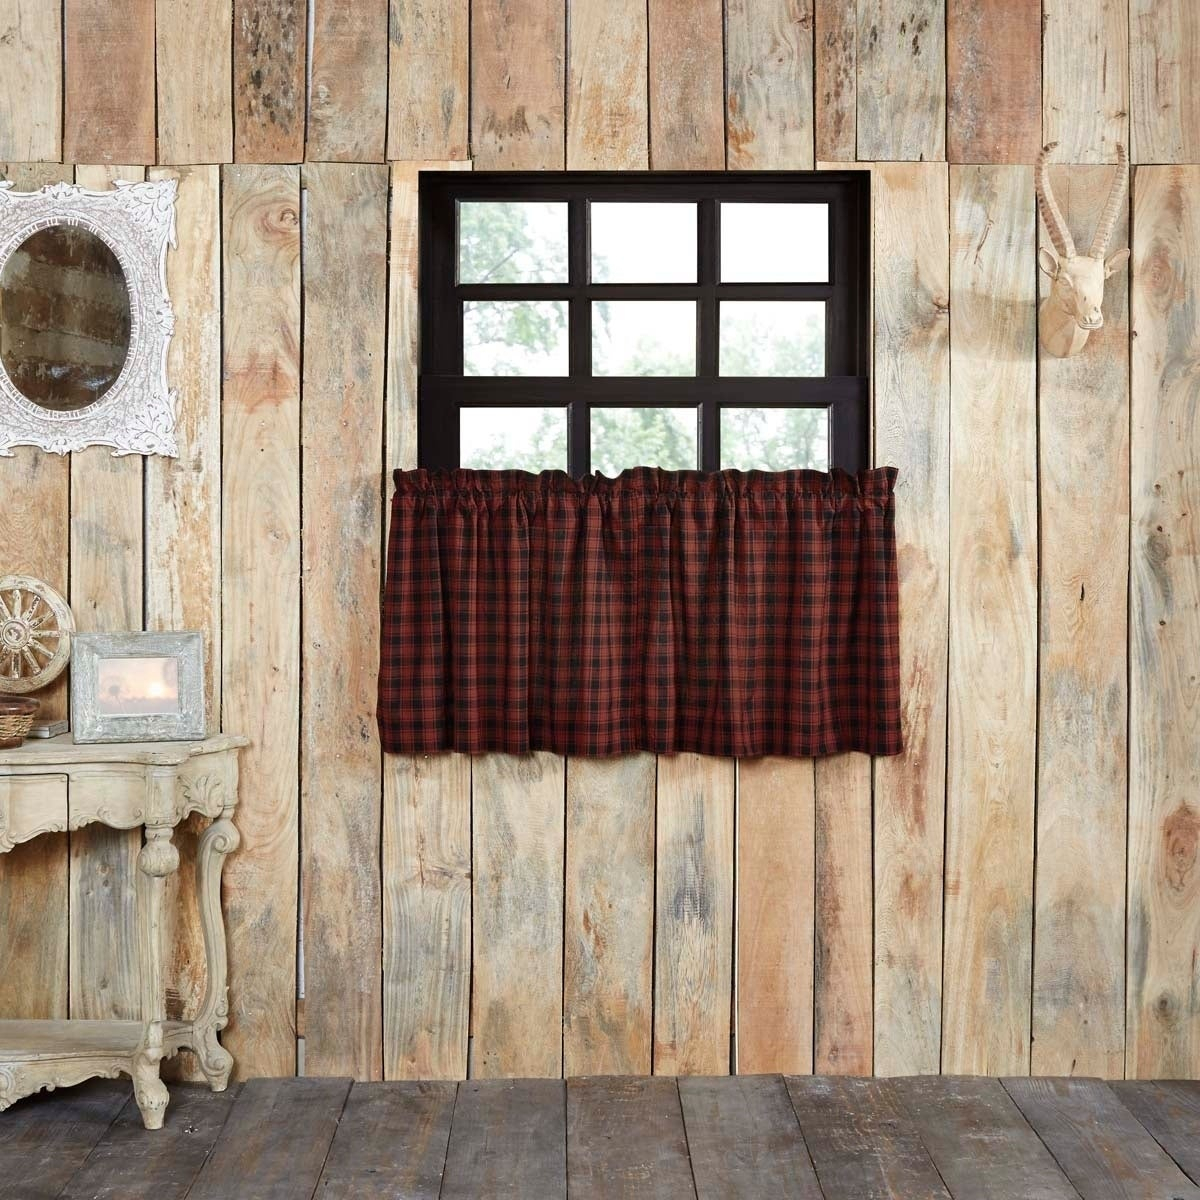 Red Window Treatments | Find Great Home Decor Deals Shopping Intended For Flinders Forge 30 Inch Tiers In Garnet (Gallery 16 of 20)